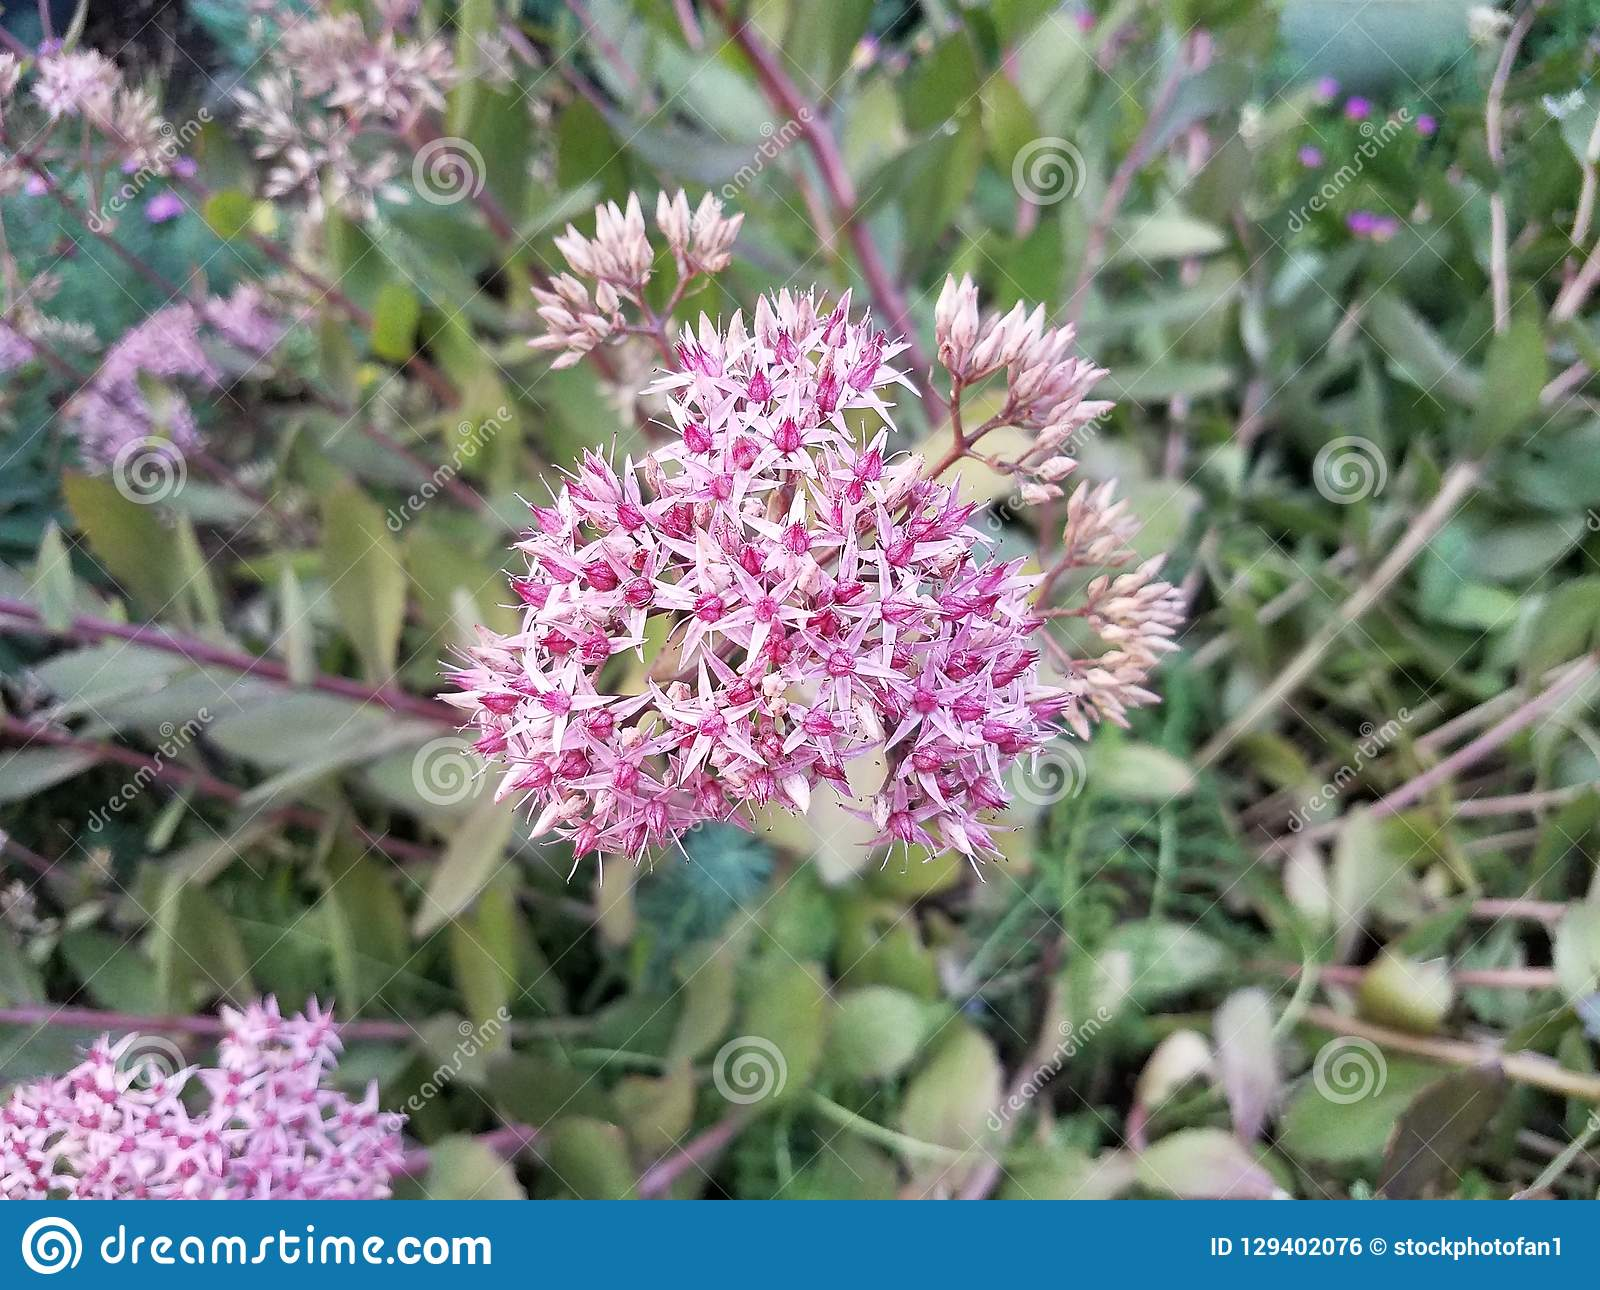 Plant with green leaves and pink flowers. A plant with green leaves and pink flowers royalty free stock image